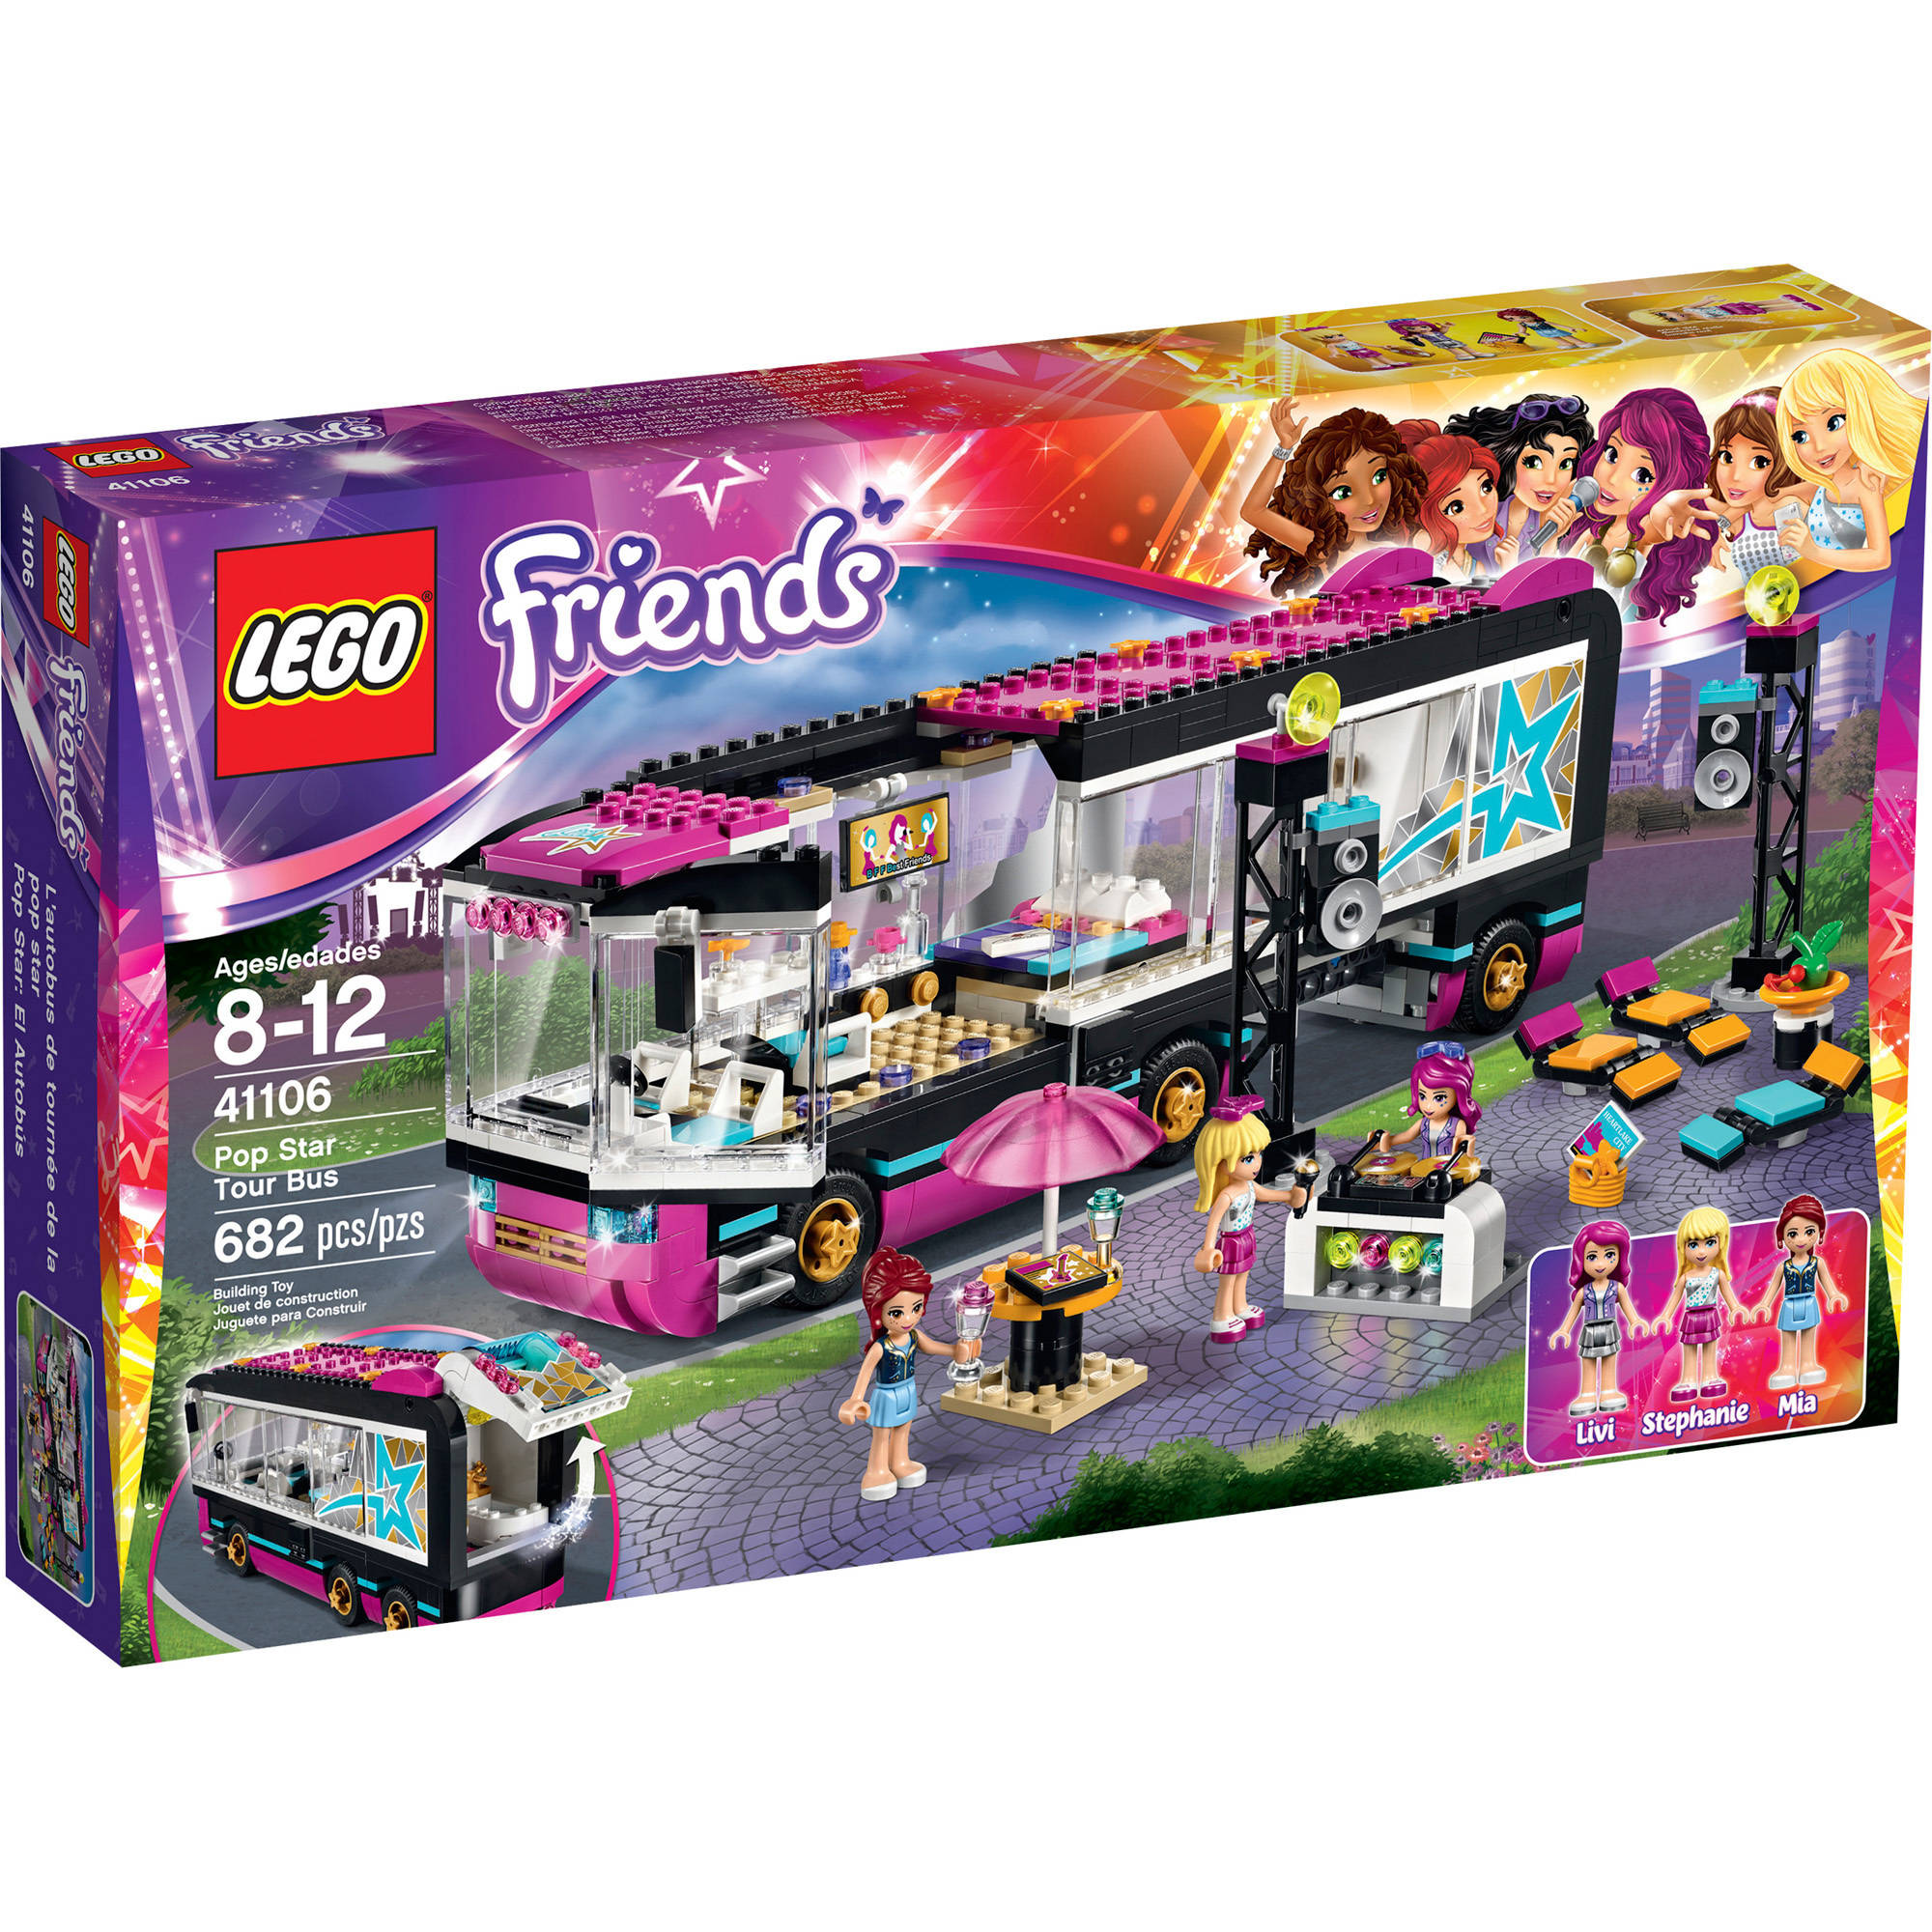 LEGO Friends Pop Star Tour Bus, 41106